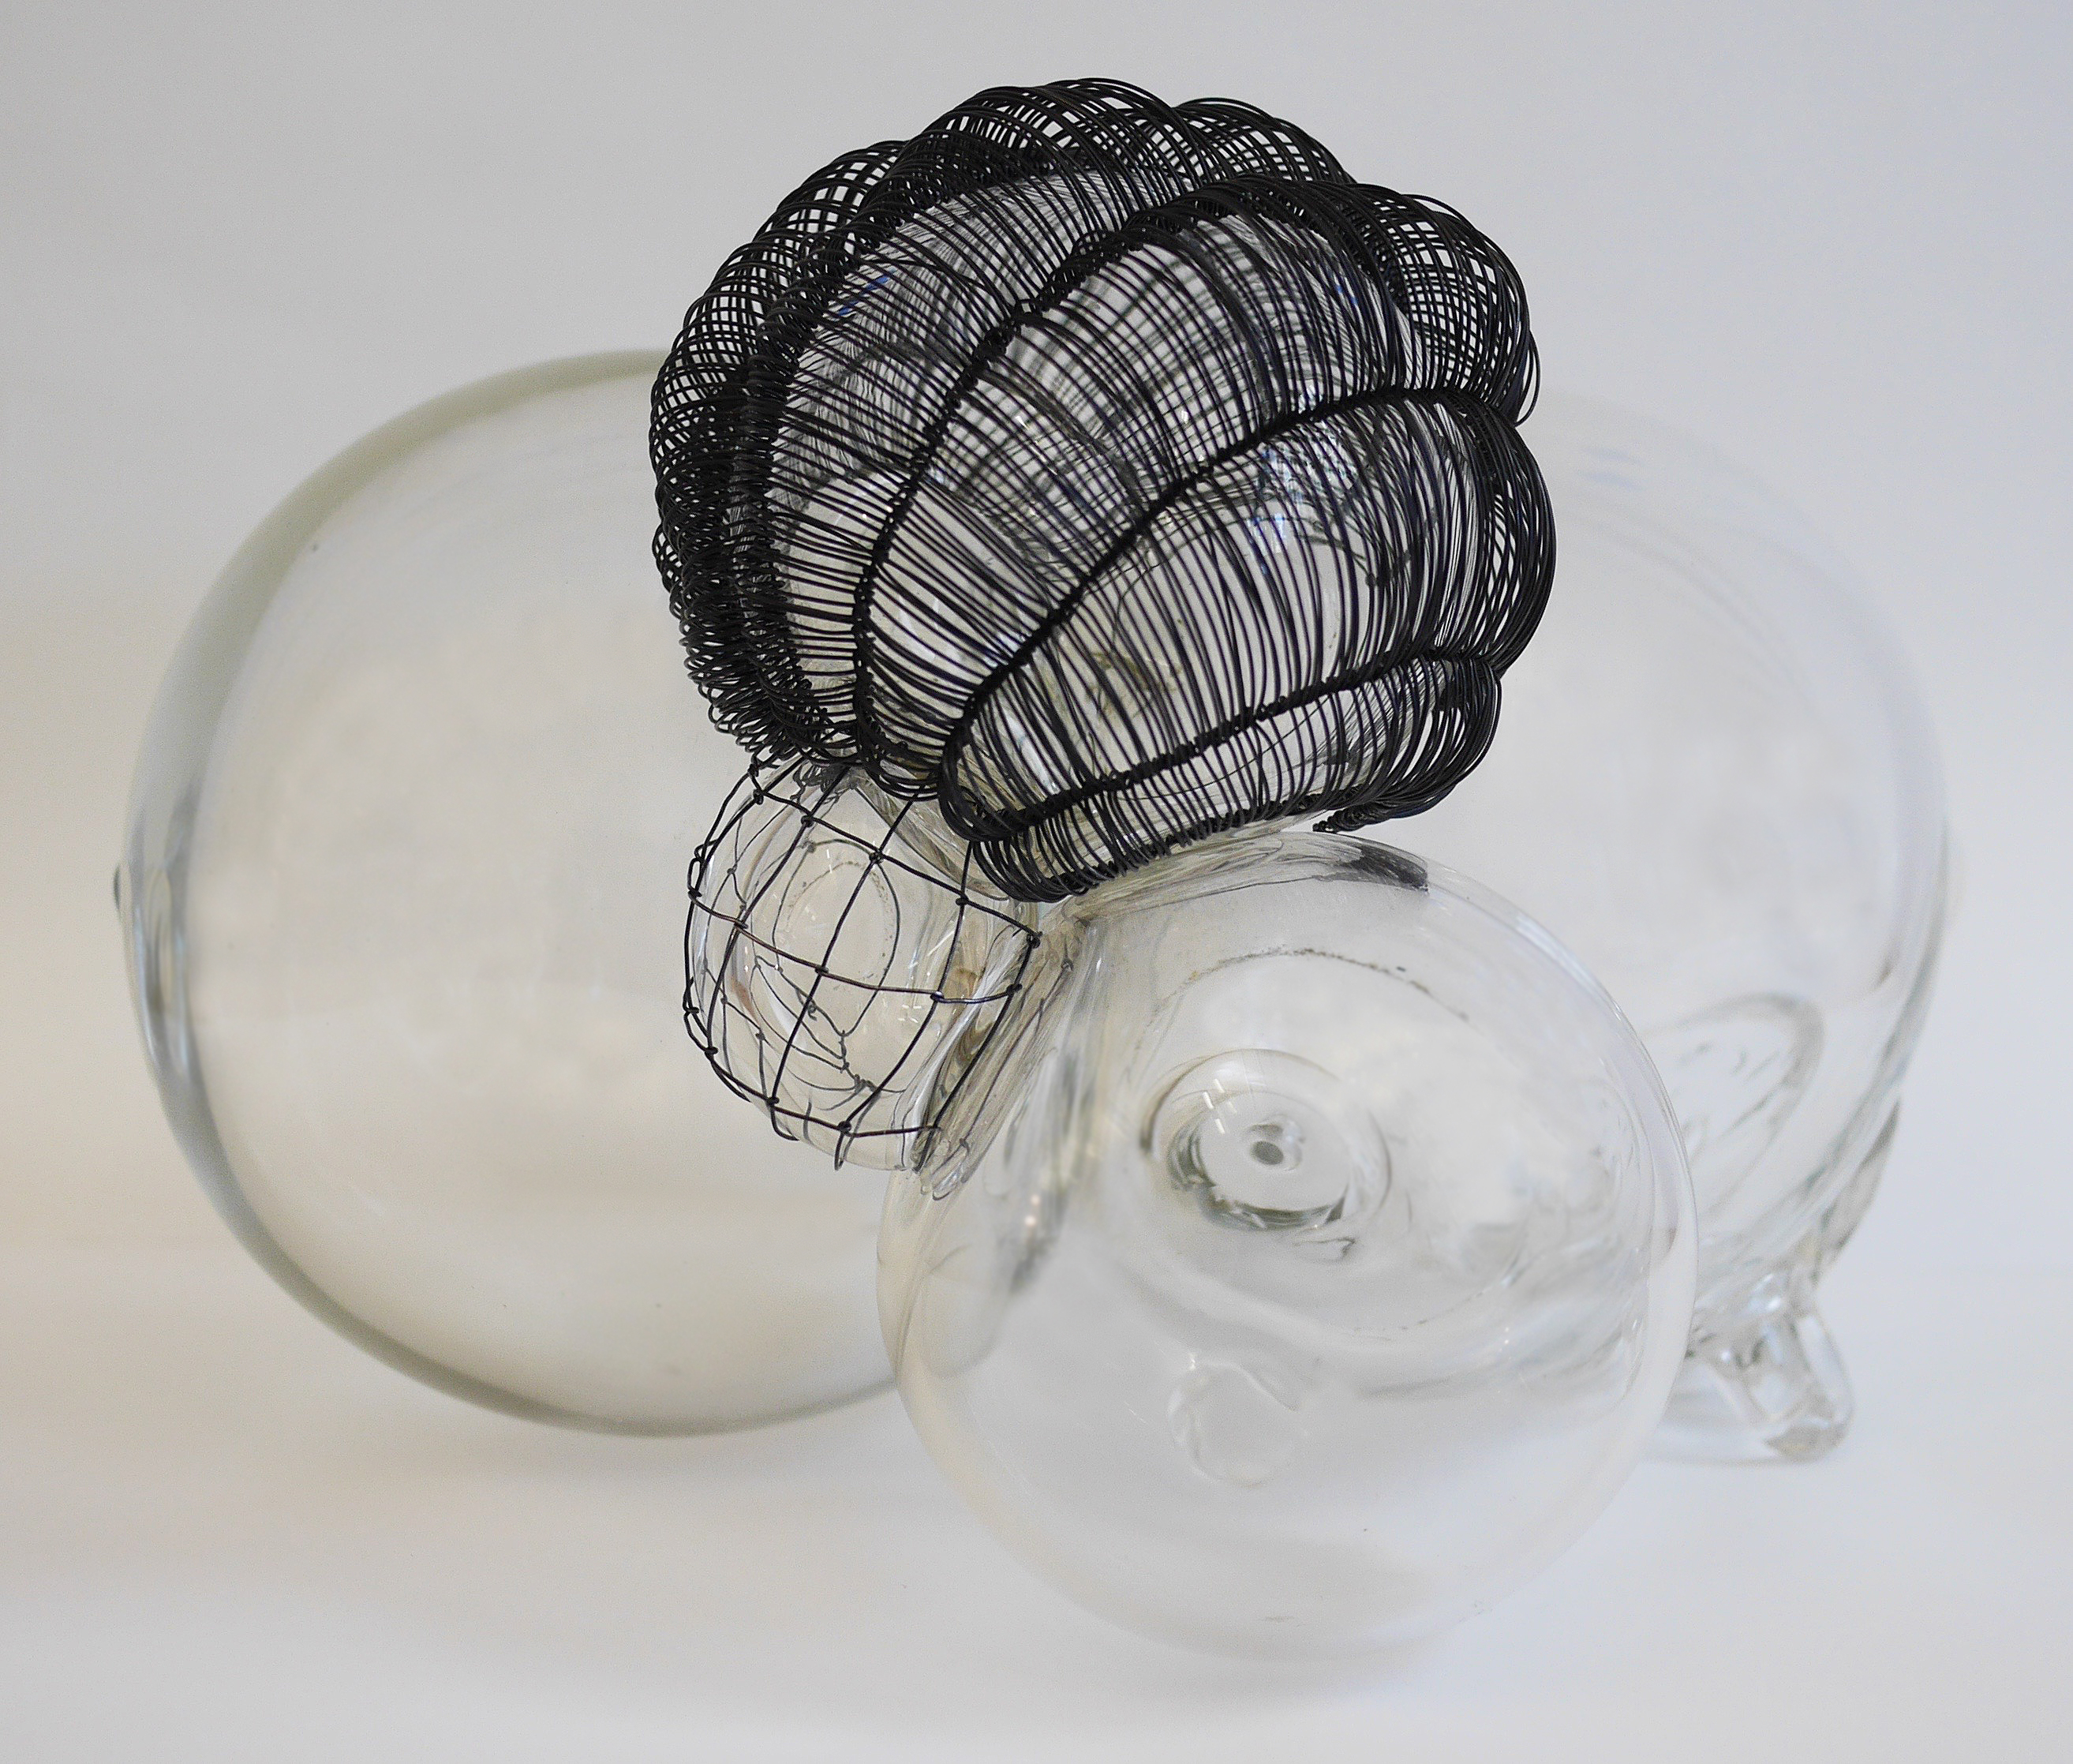 "Beth Dary, Caged 2, 2018, blown glass and steel wire, 8""h x 12""w x 12""d"